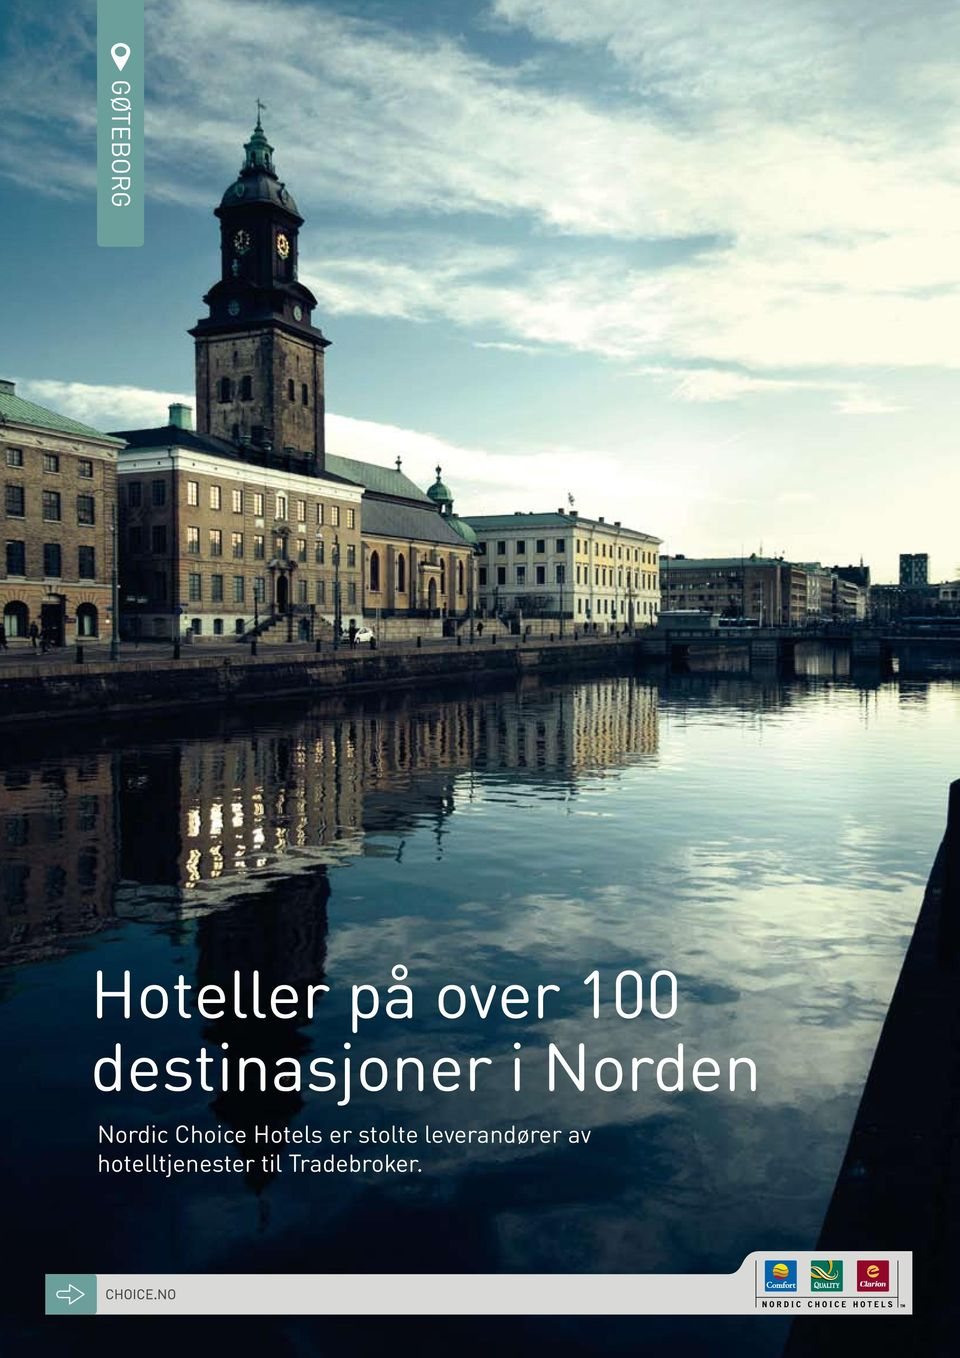 Choice Hotels er stolte